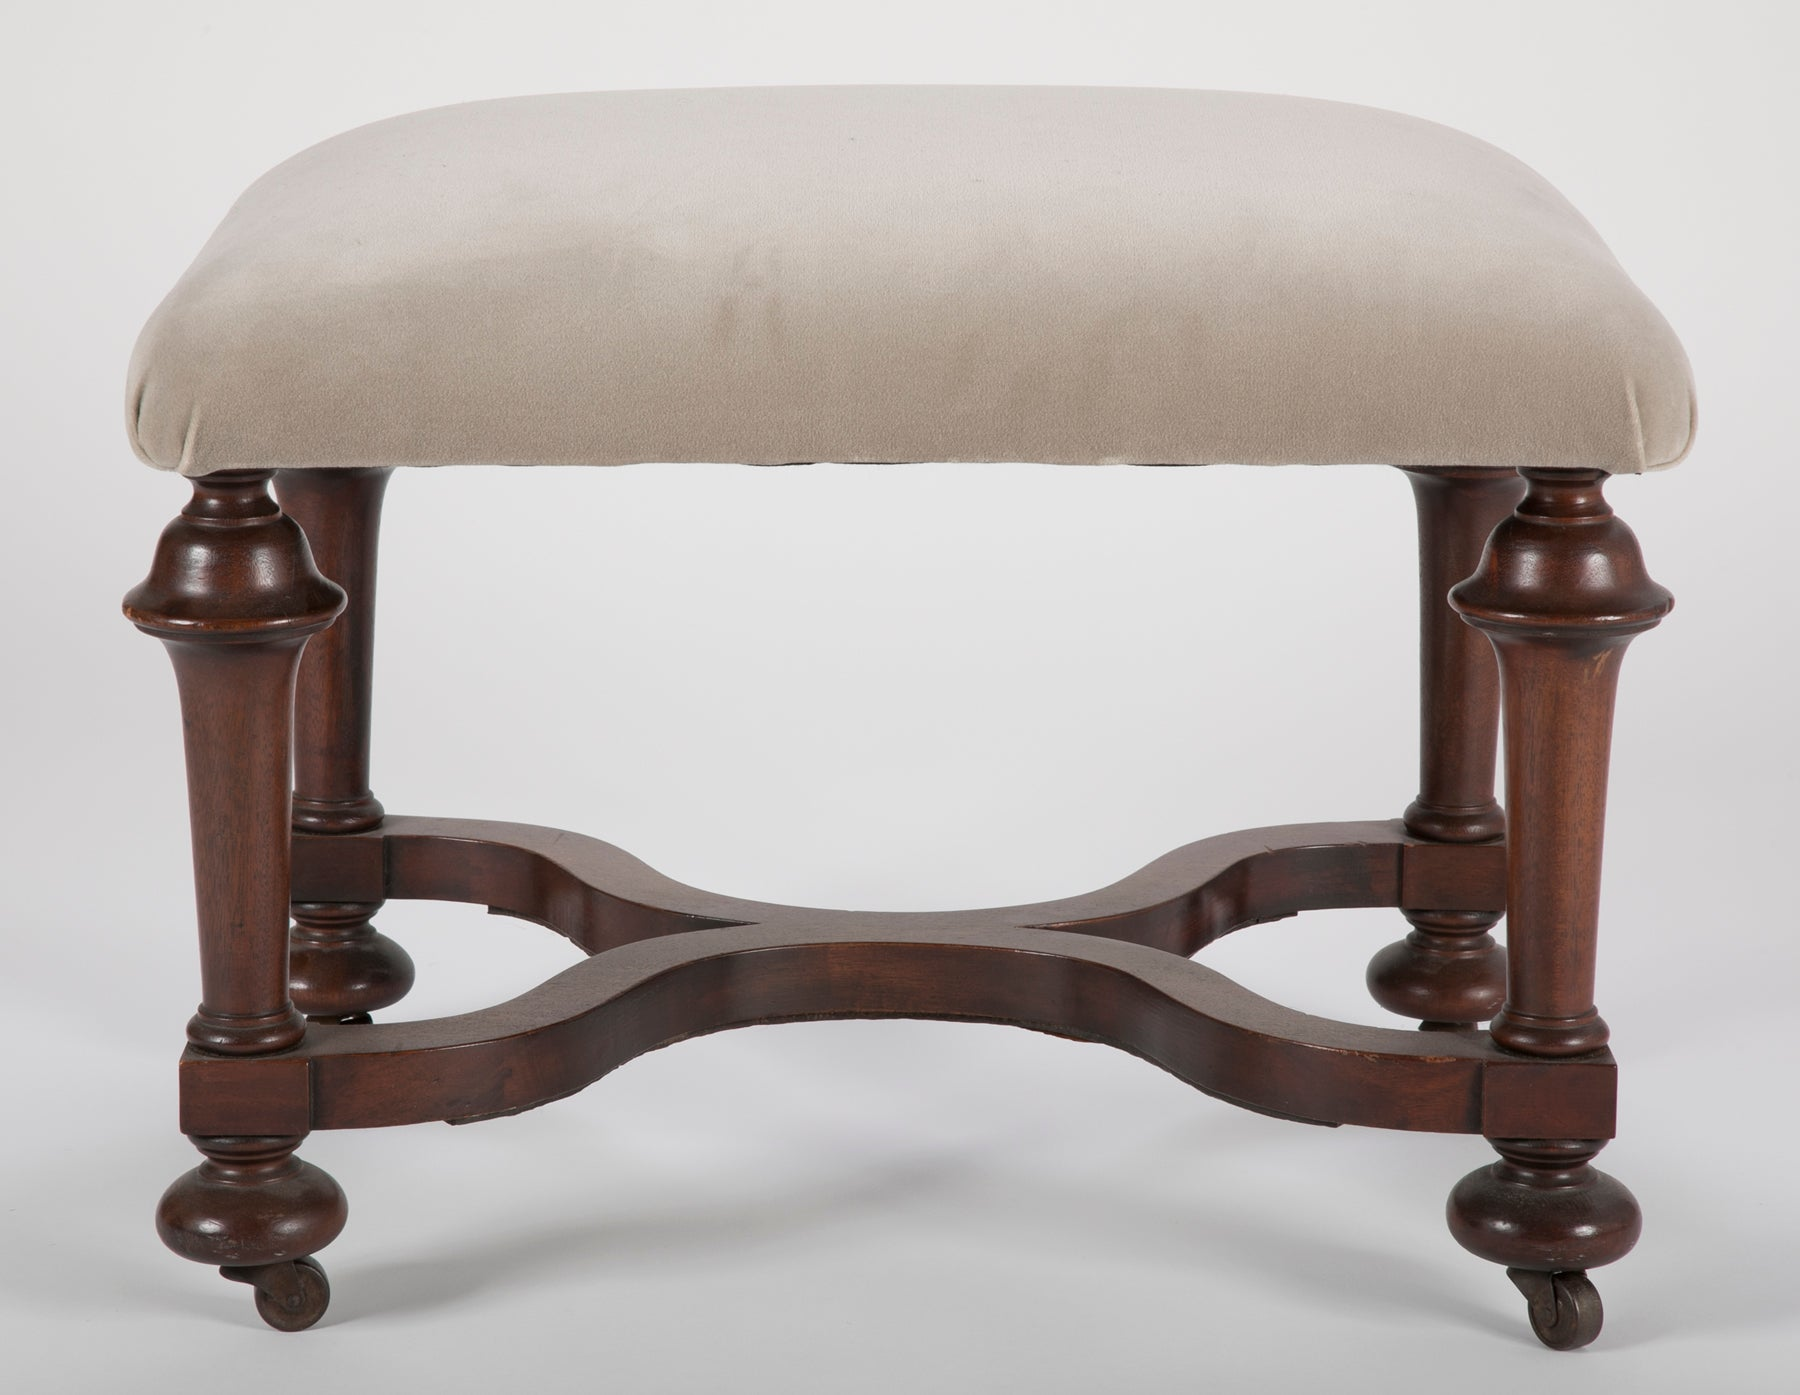 A 19th Century English Bench